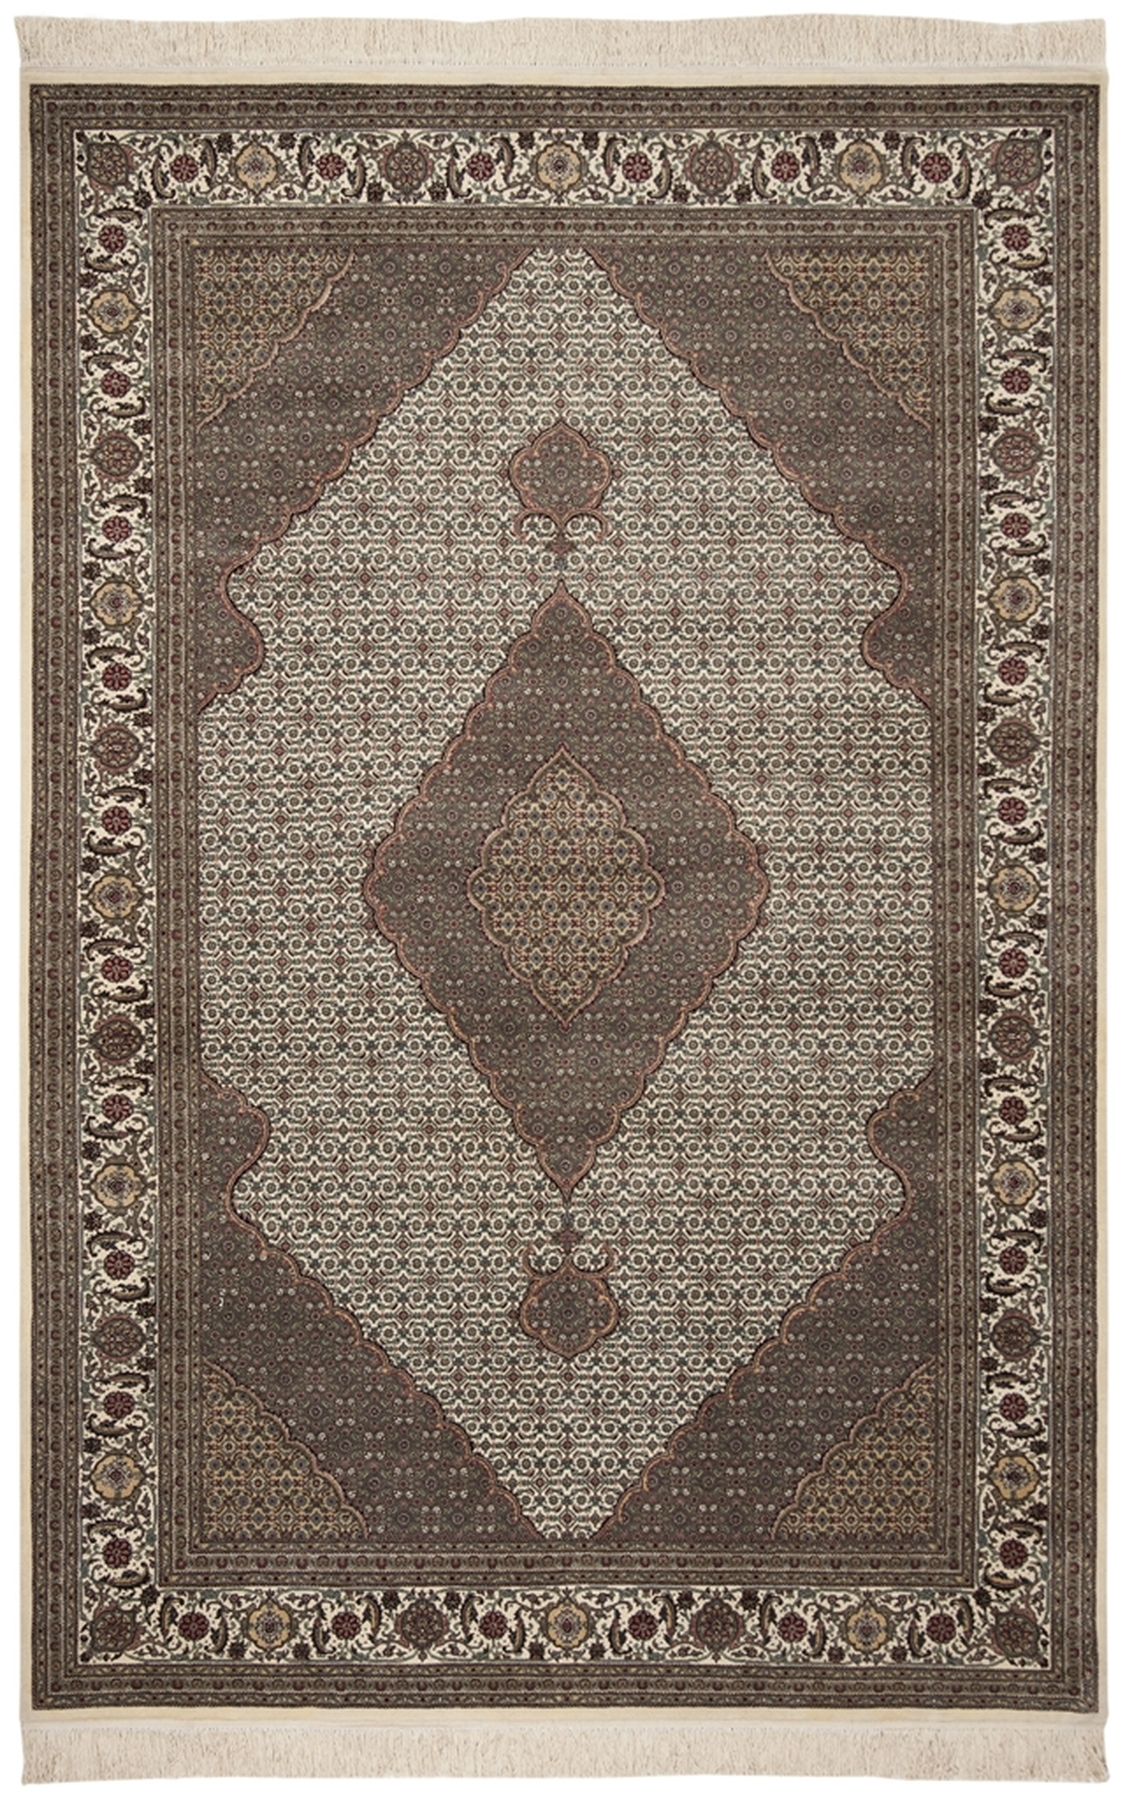 Rug Th15 Tabriz Herati Area Rugs By Safavieh